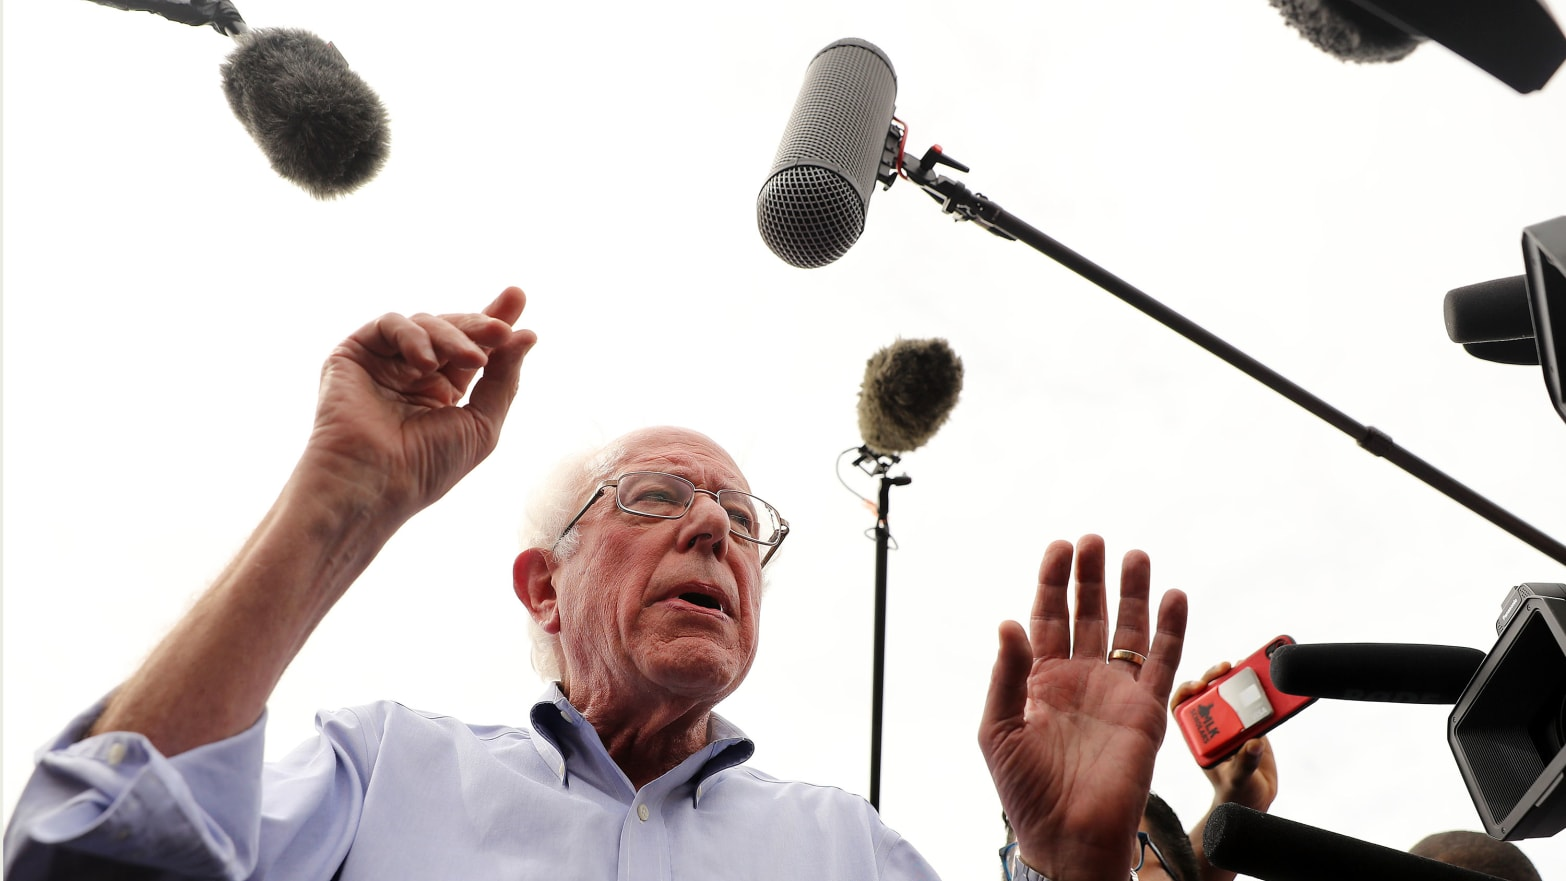 Team Bernie: The Press Has a 'Personal Bias' Against Him and Find His Supporters 'Annoying'